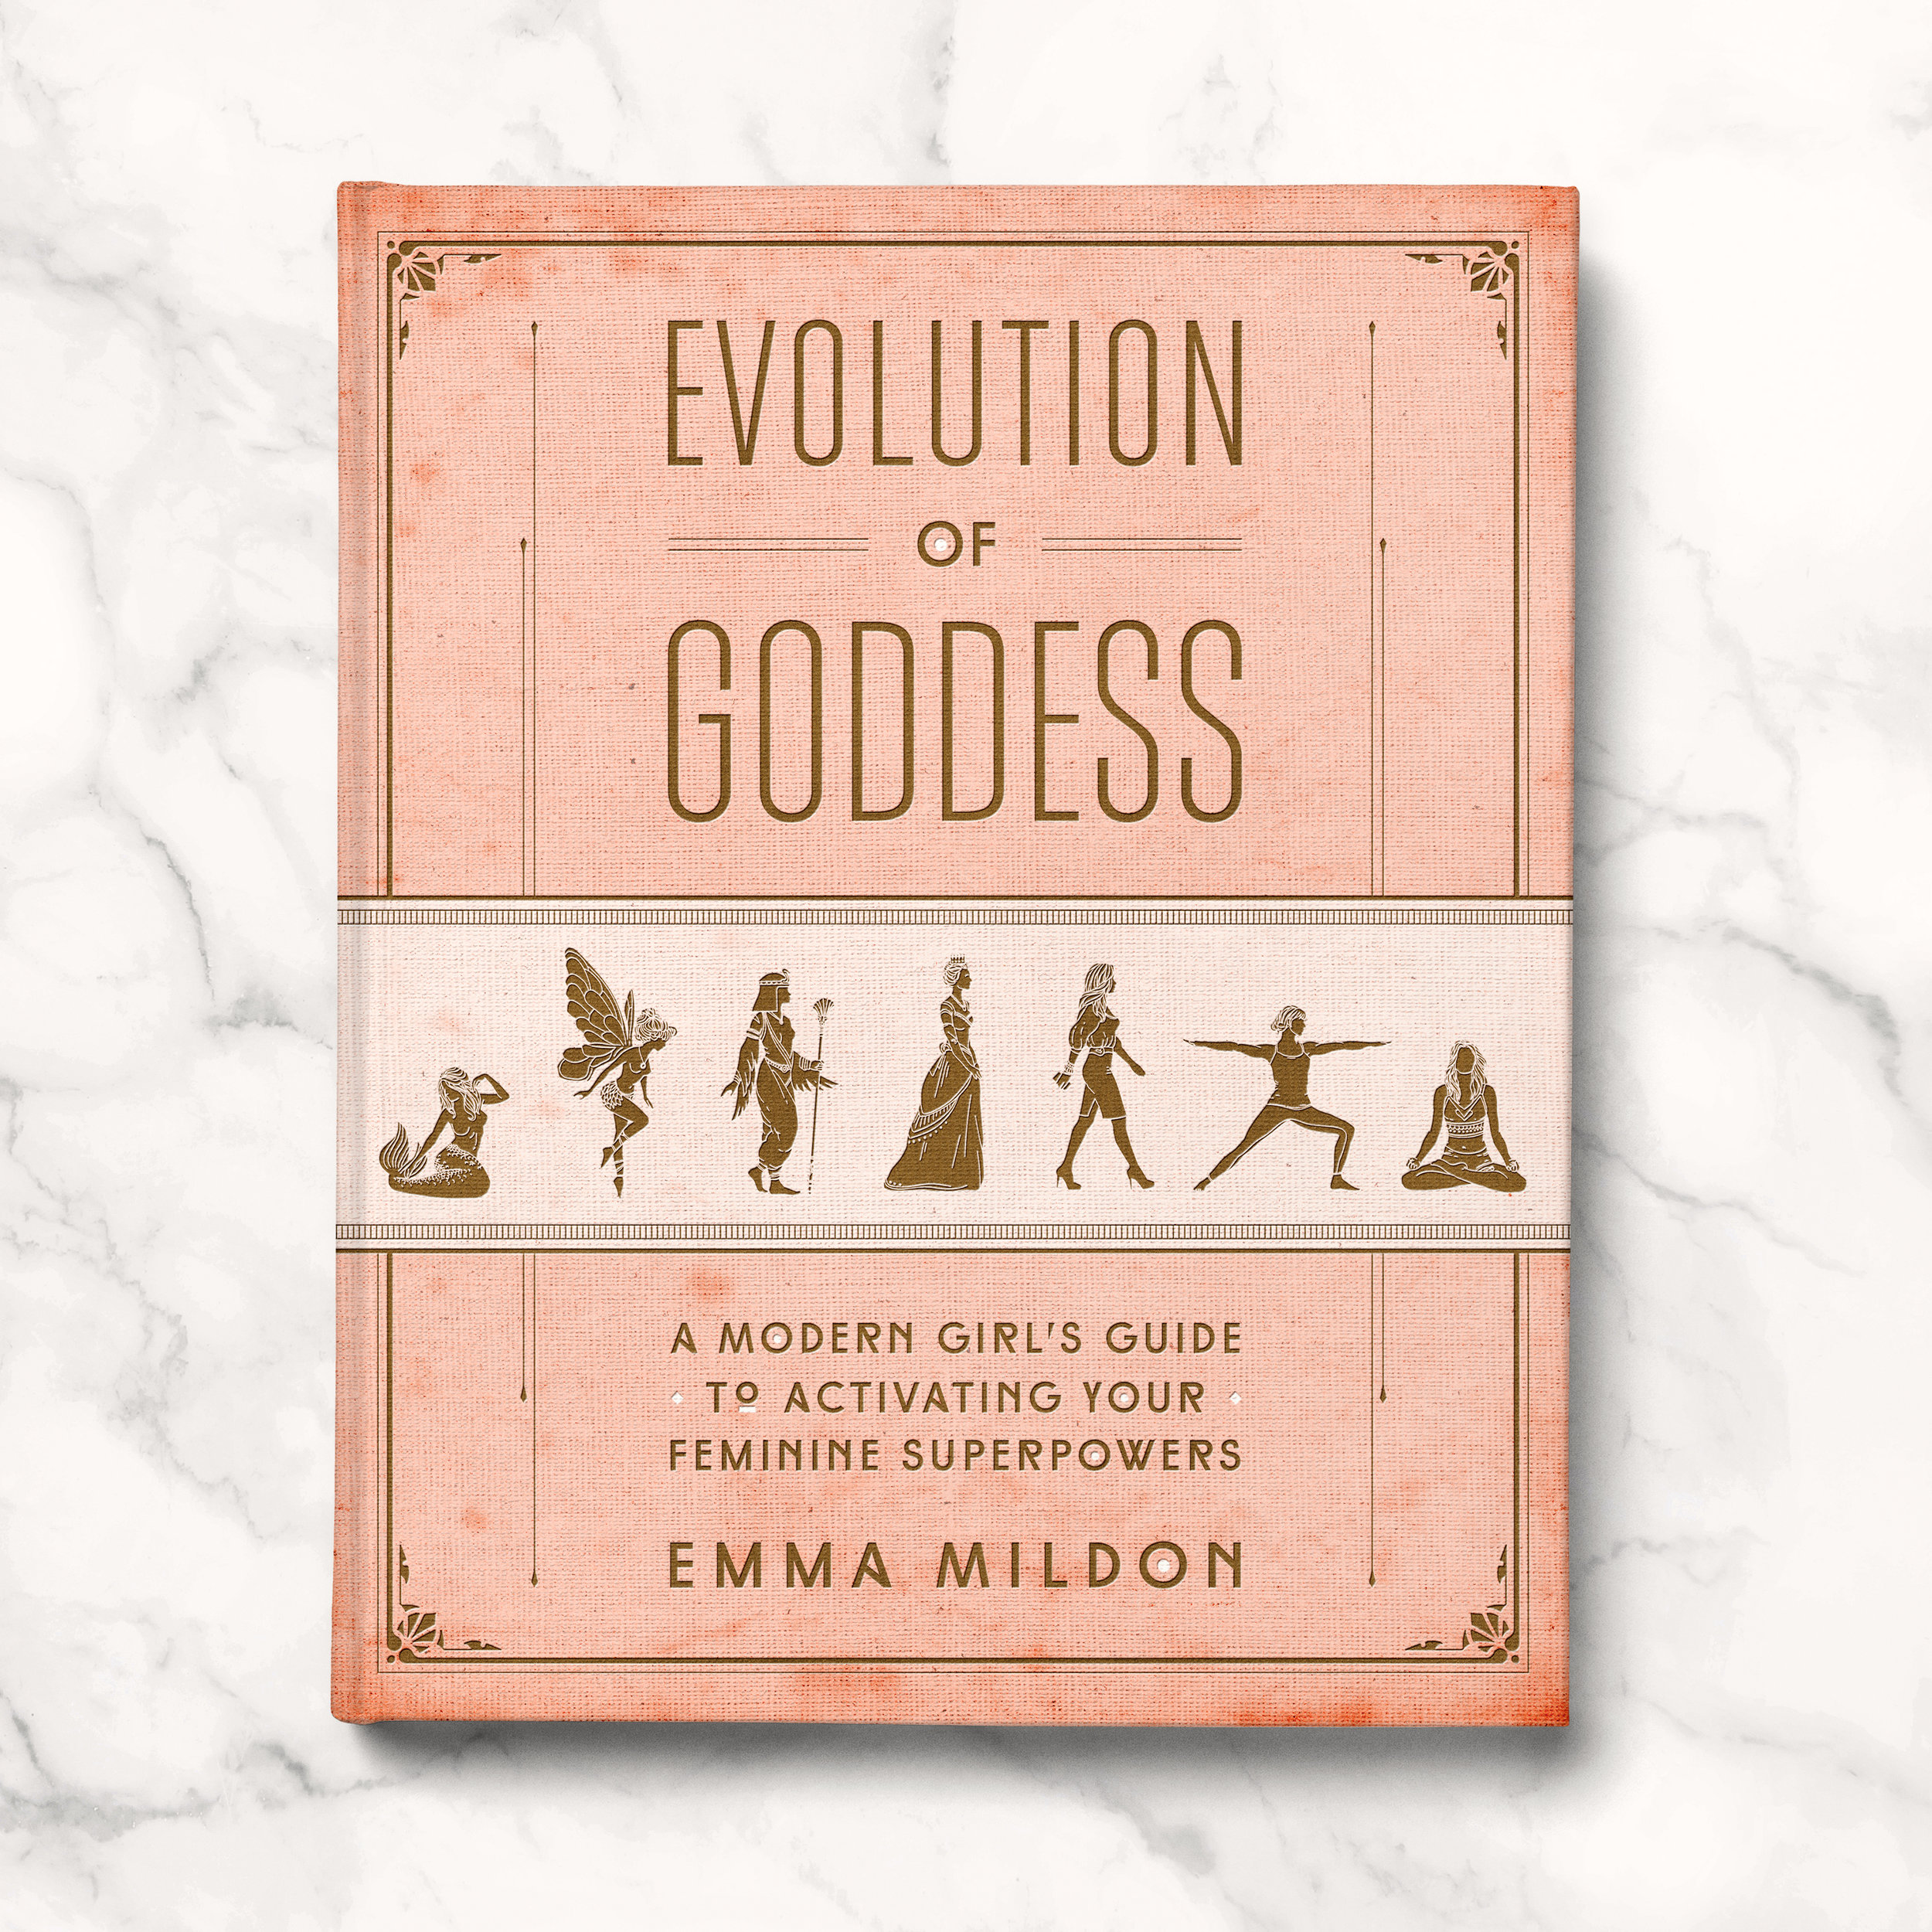 EvolutionOfGoddess_CoverComp_4.6.jpg